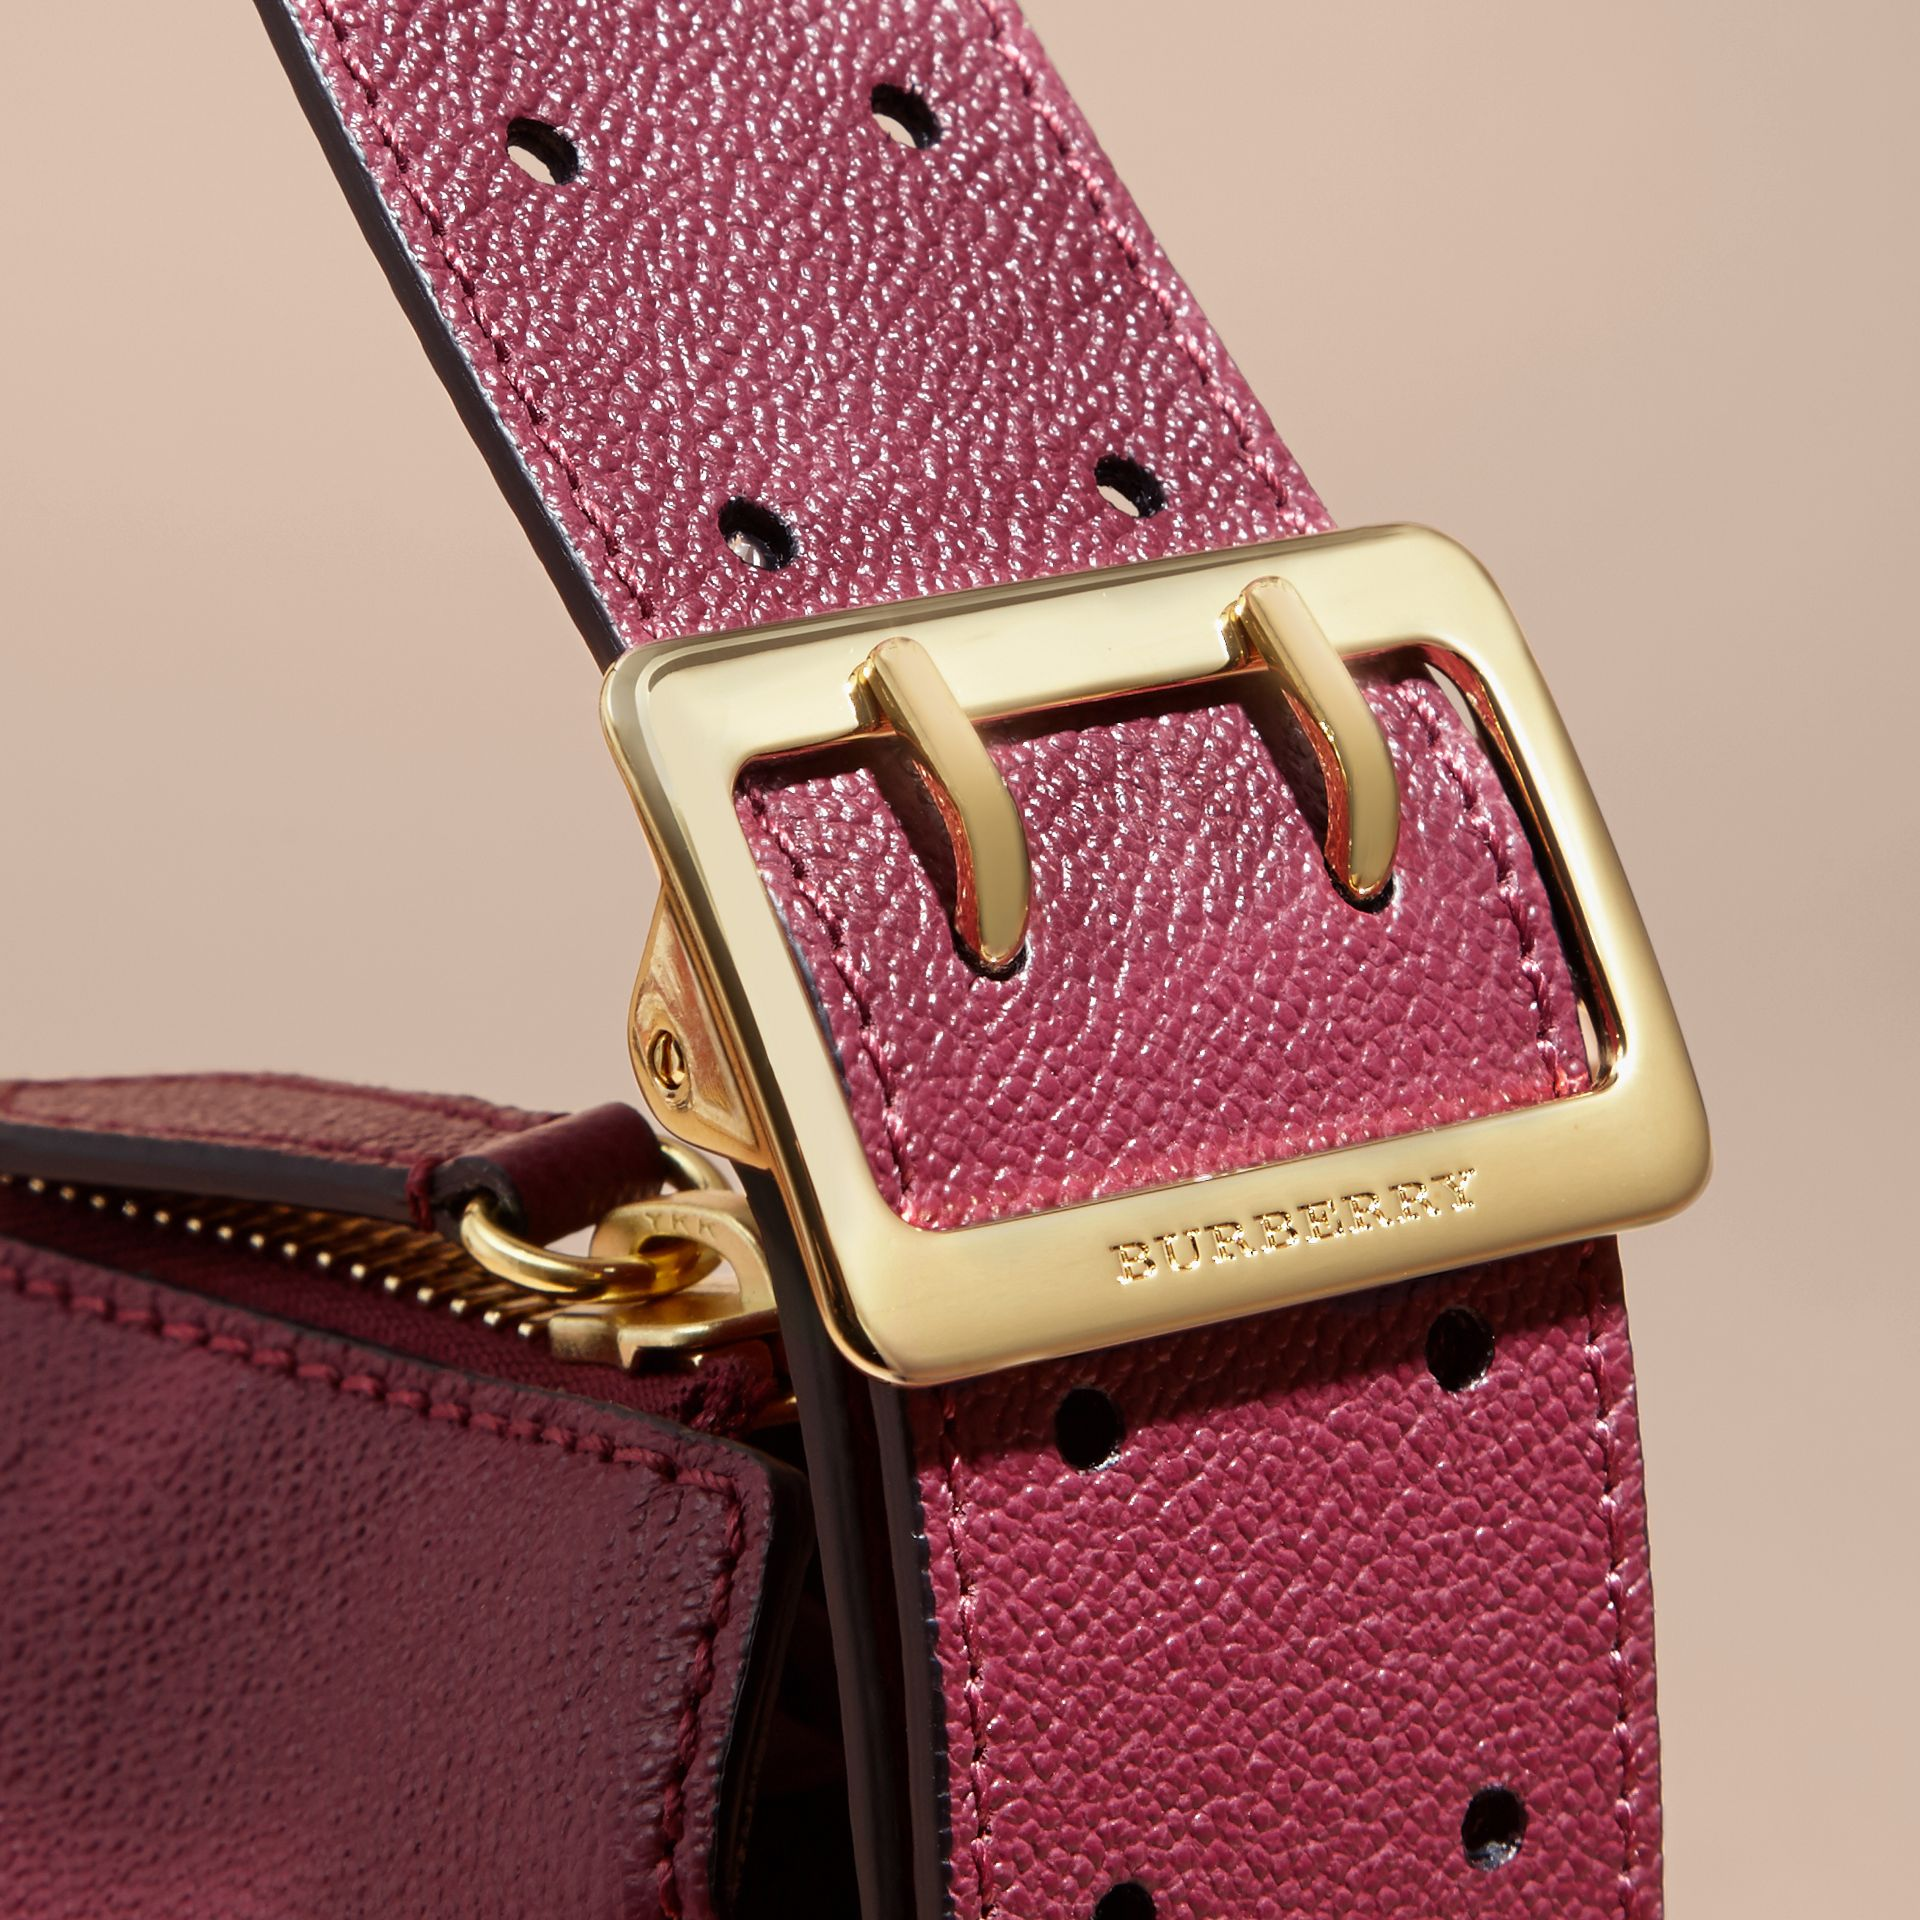 Buckle Detail Leather and House Check Crossbody Bag in Dark Plum - Women | Burberry - gallery image 2